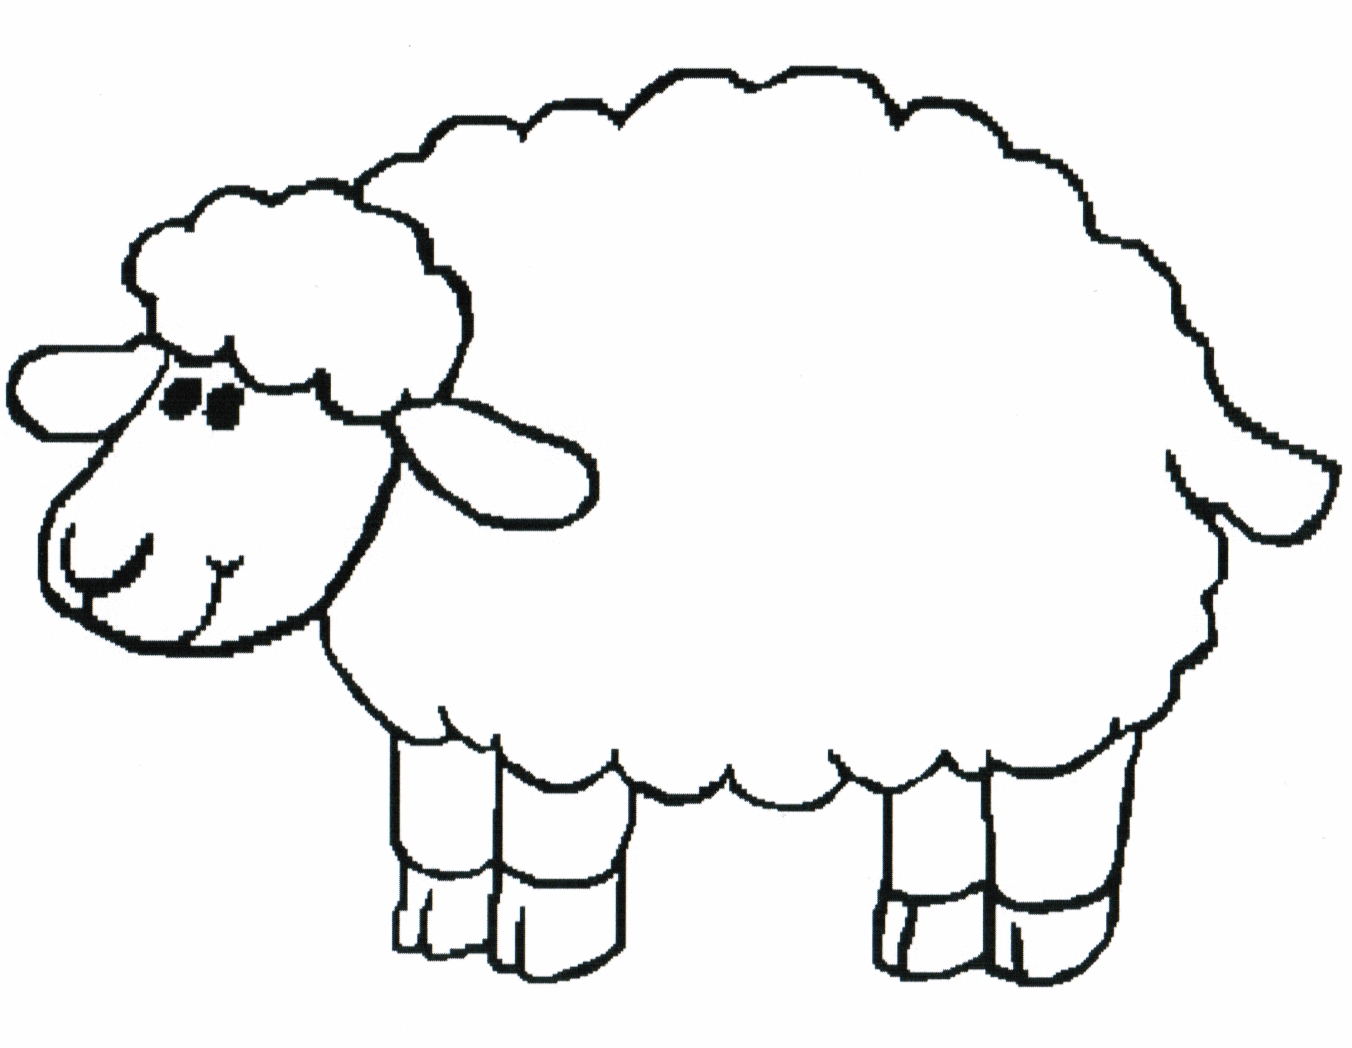 Sheep clipart black and white Unique Sheep black and white.